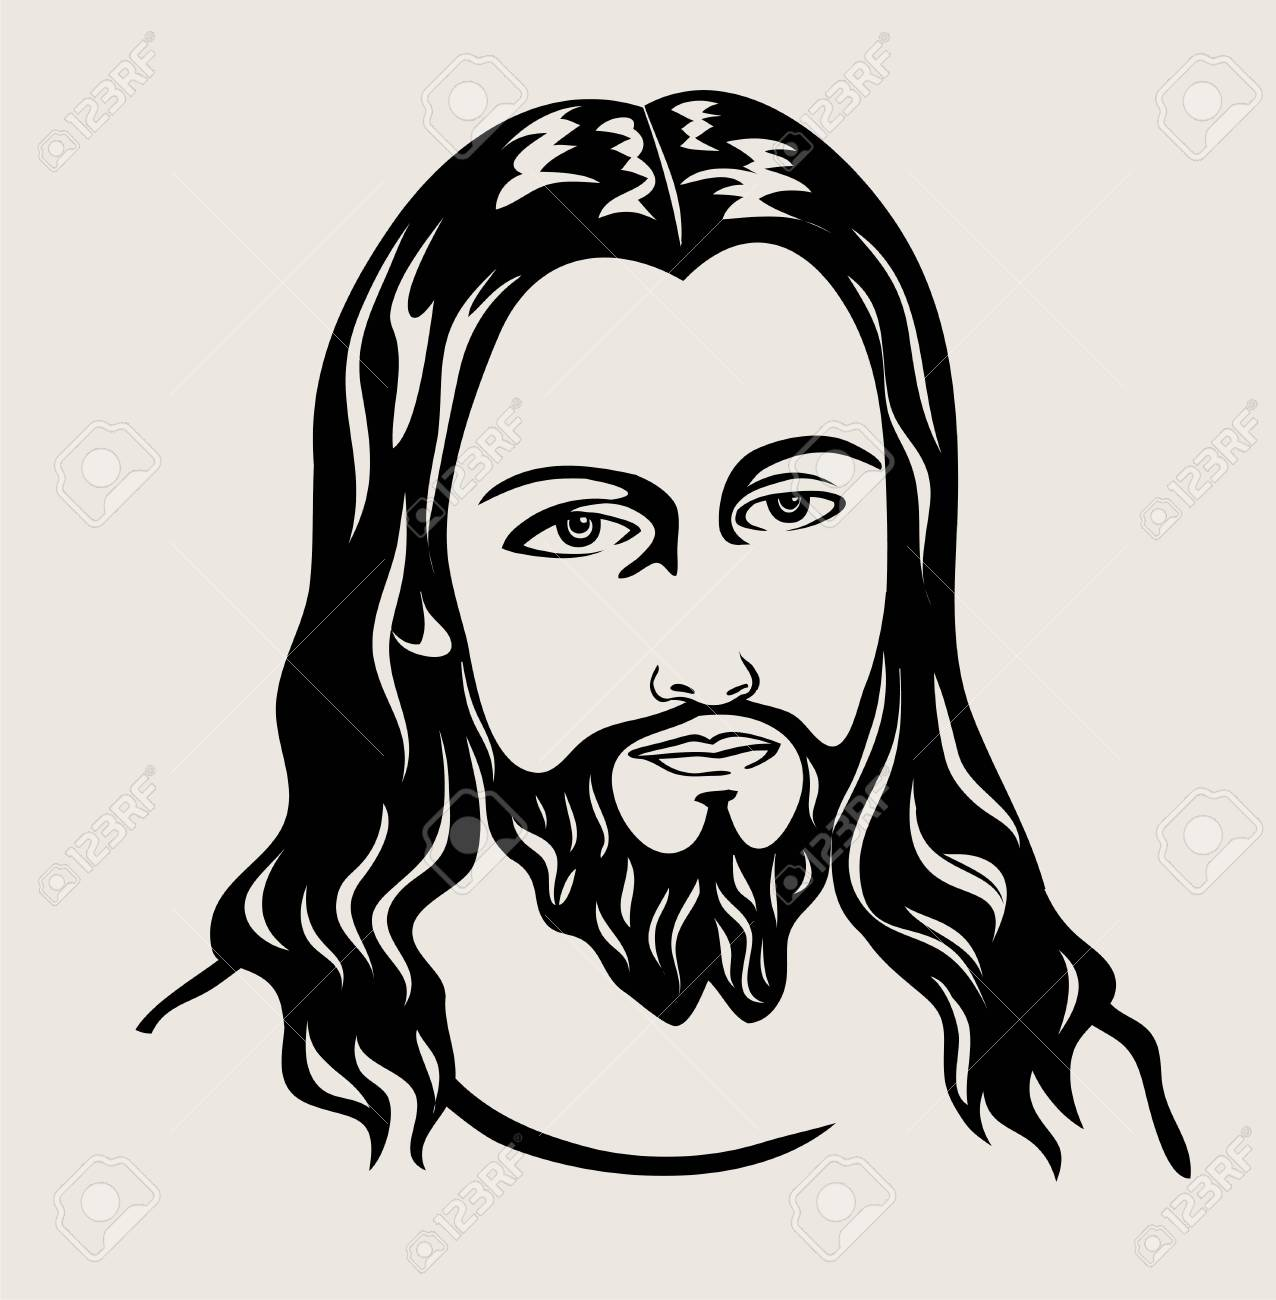 Jesus Christ sketch art design on silhouette black and white...